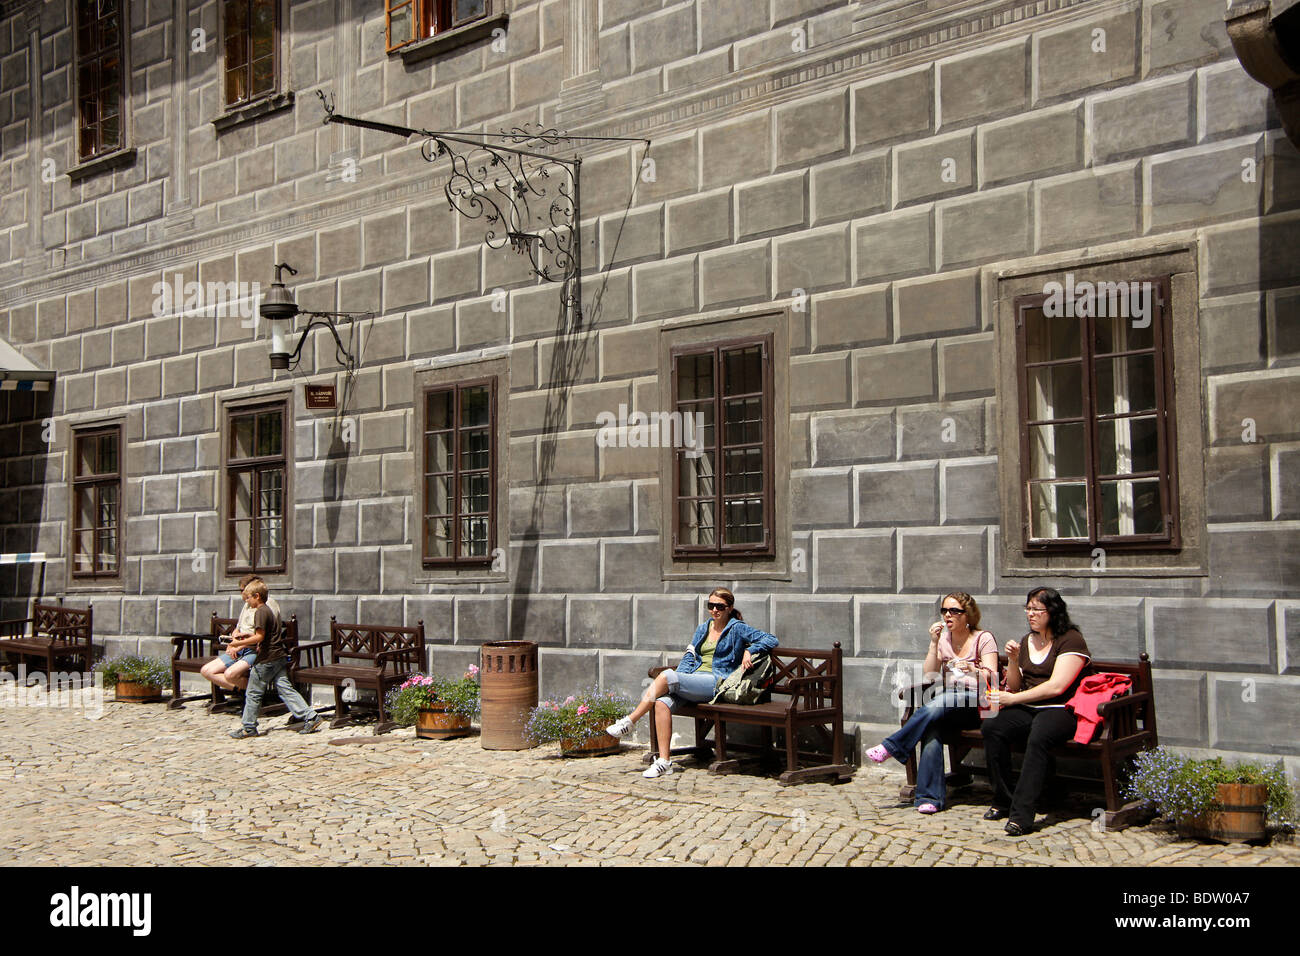 visitors sitting in the painted courtyard of the Castle, Cesky Krumlov, Czech Republic, Europe - Stock Image